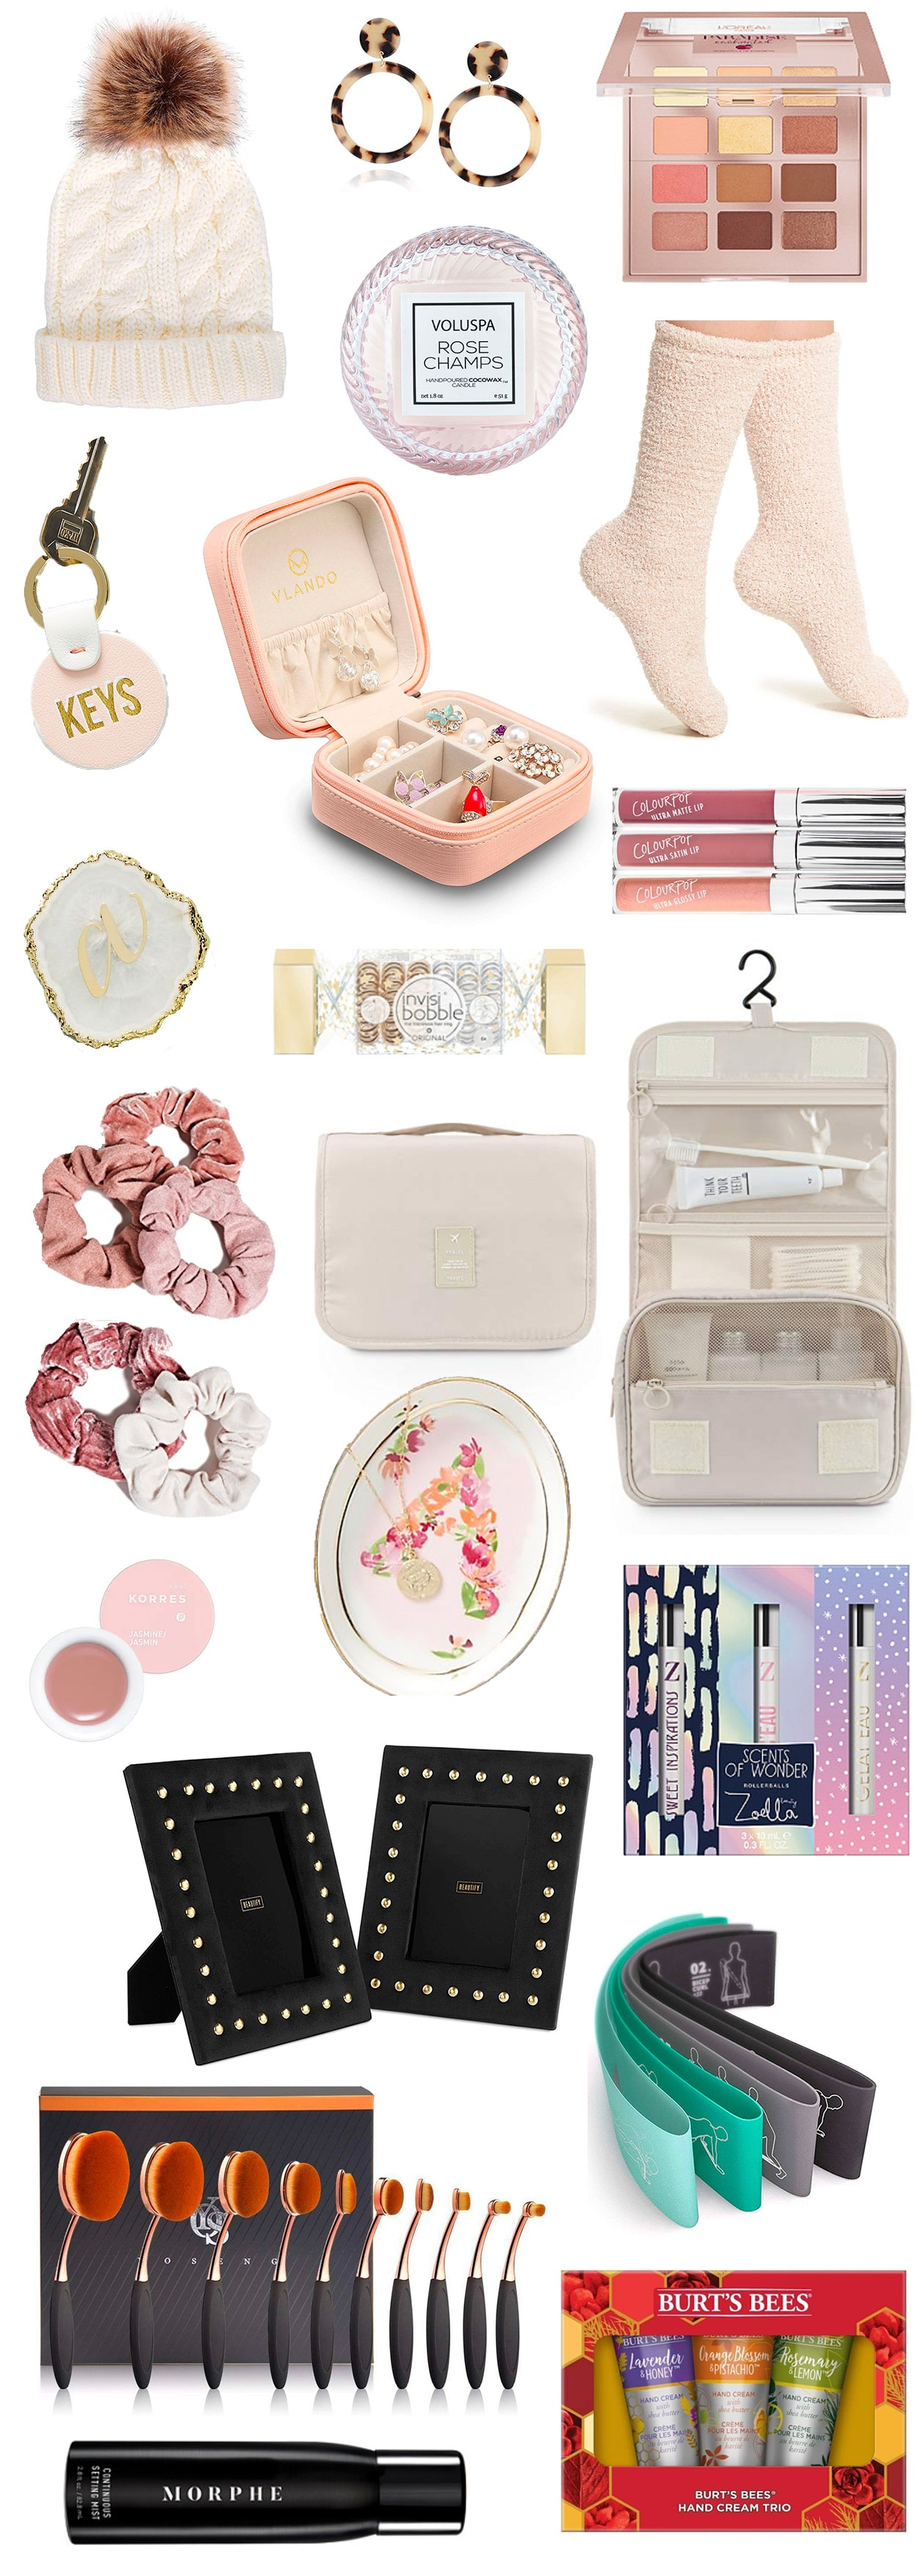 2018 Best Christmas Gifts For Women Under $15